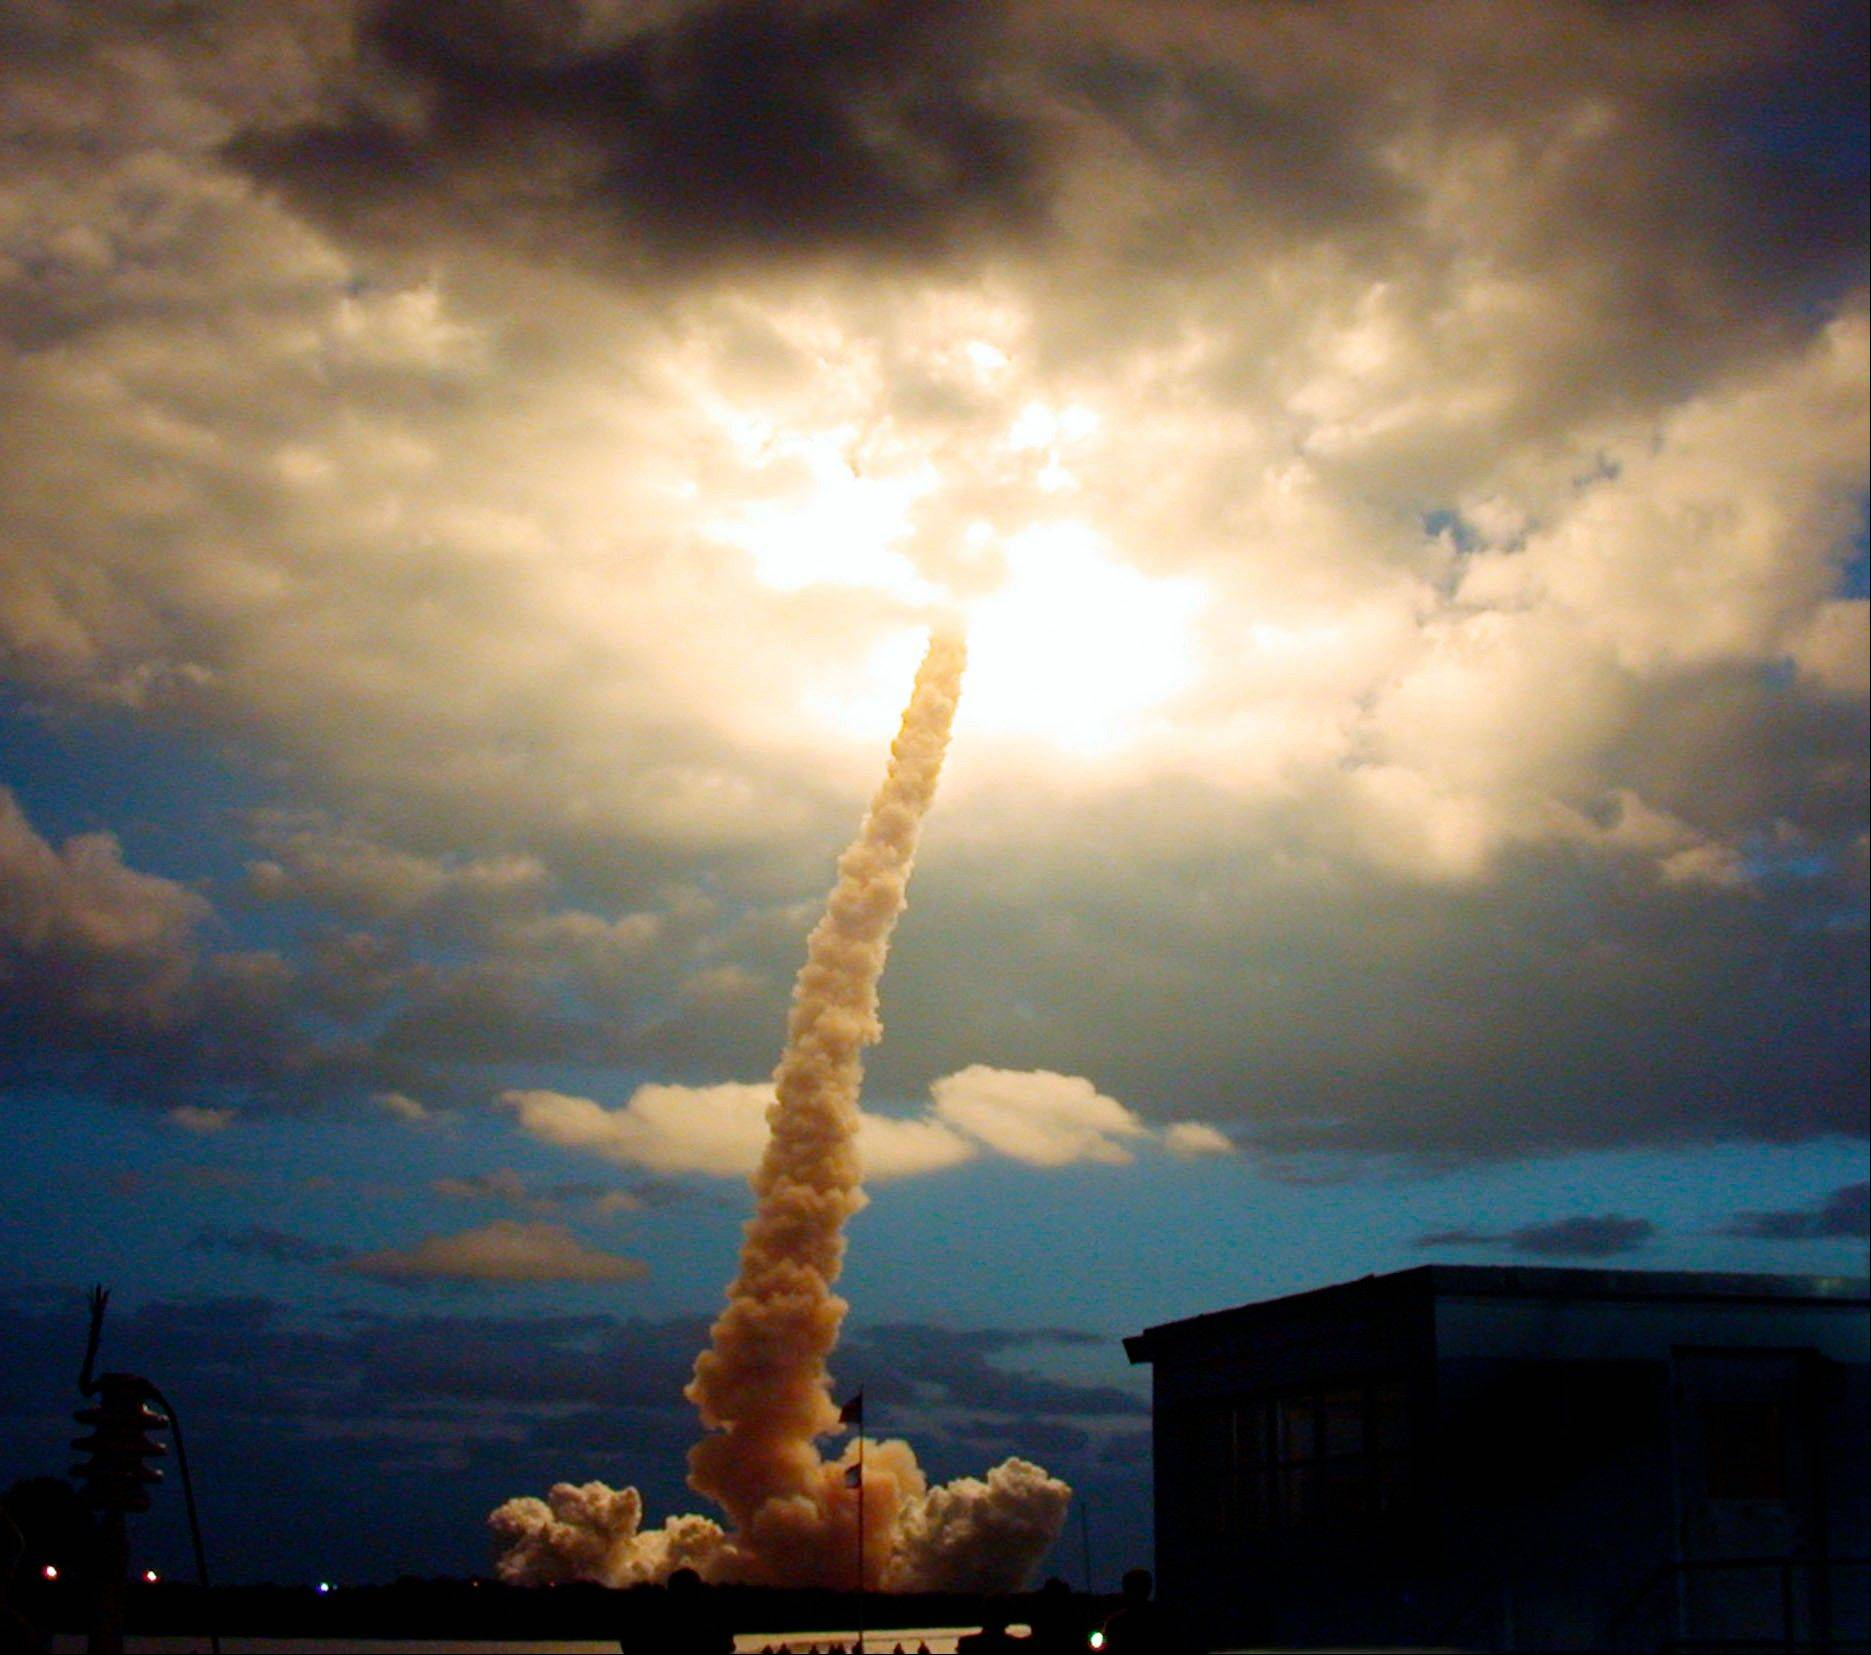 In this Friday, March 1, 2002 file picture, the space shuttle Columbia illuminates a cloud during its morning liftoff at the Kennedy Space Center in Cape Canaveral, Fla.